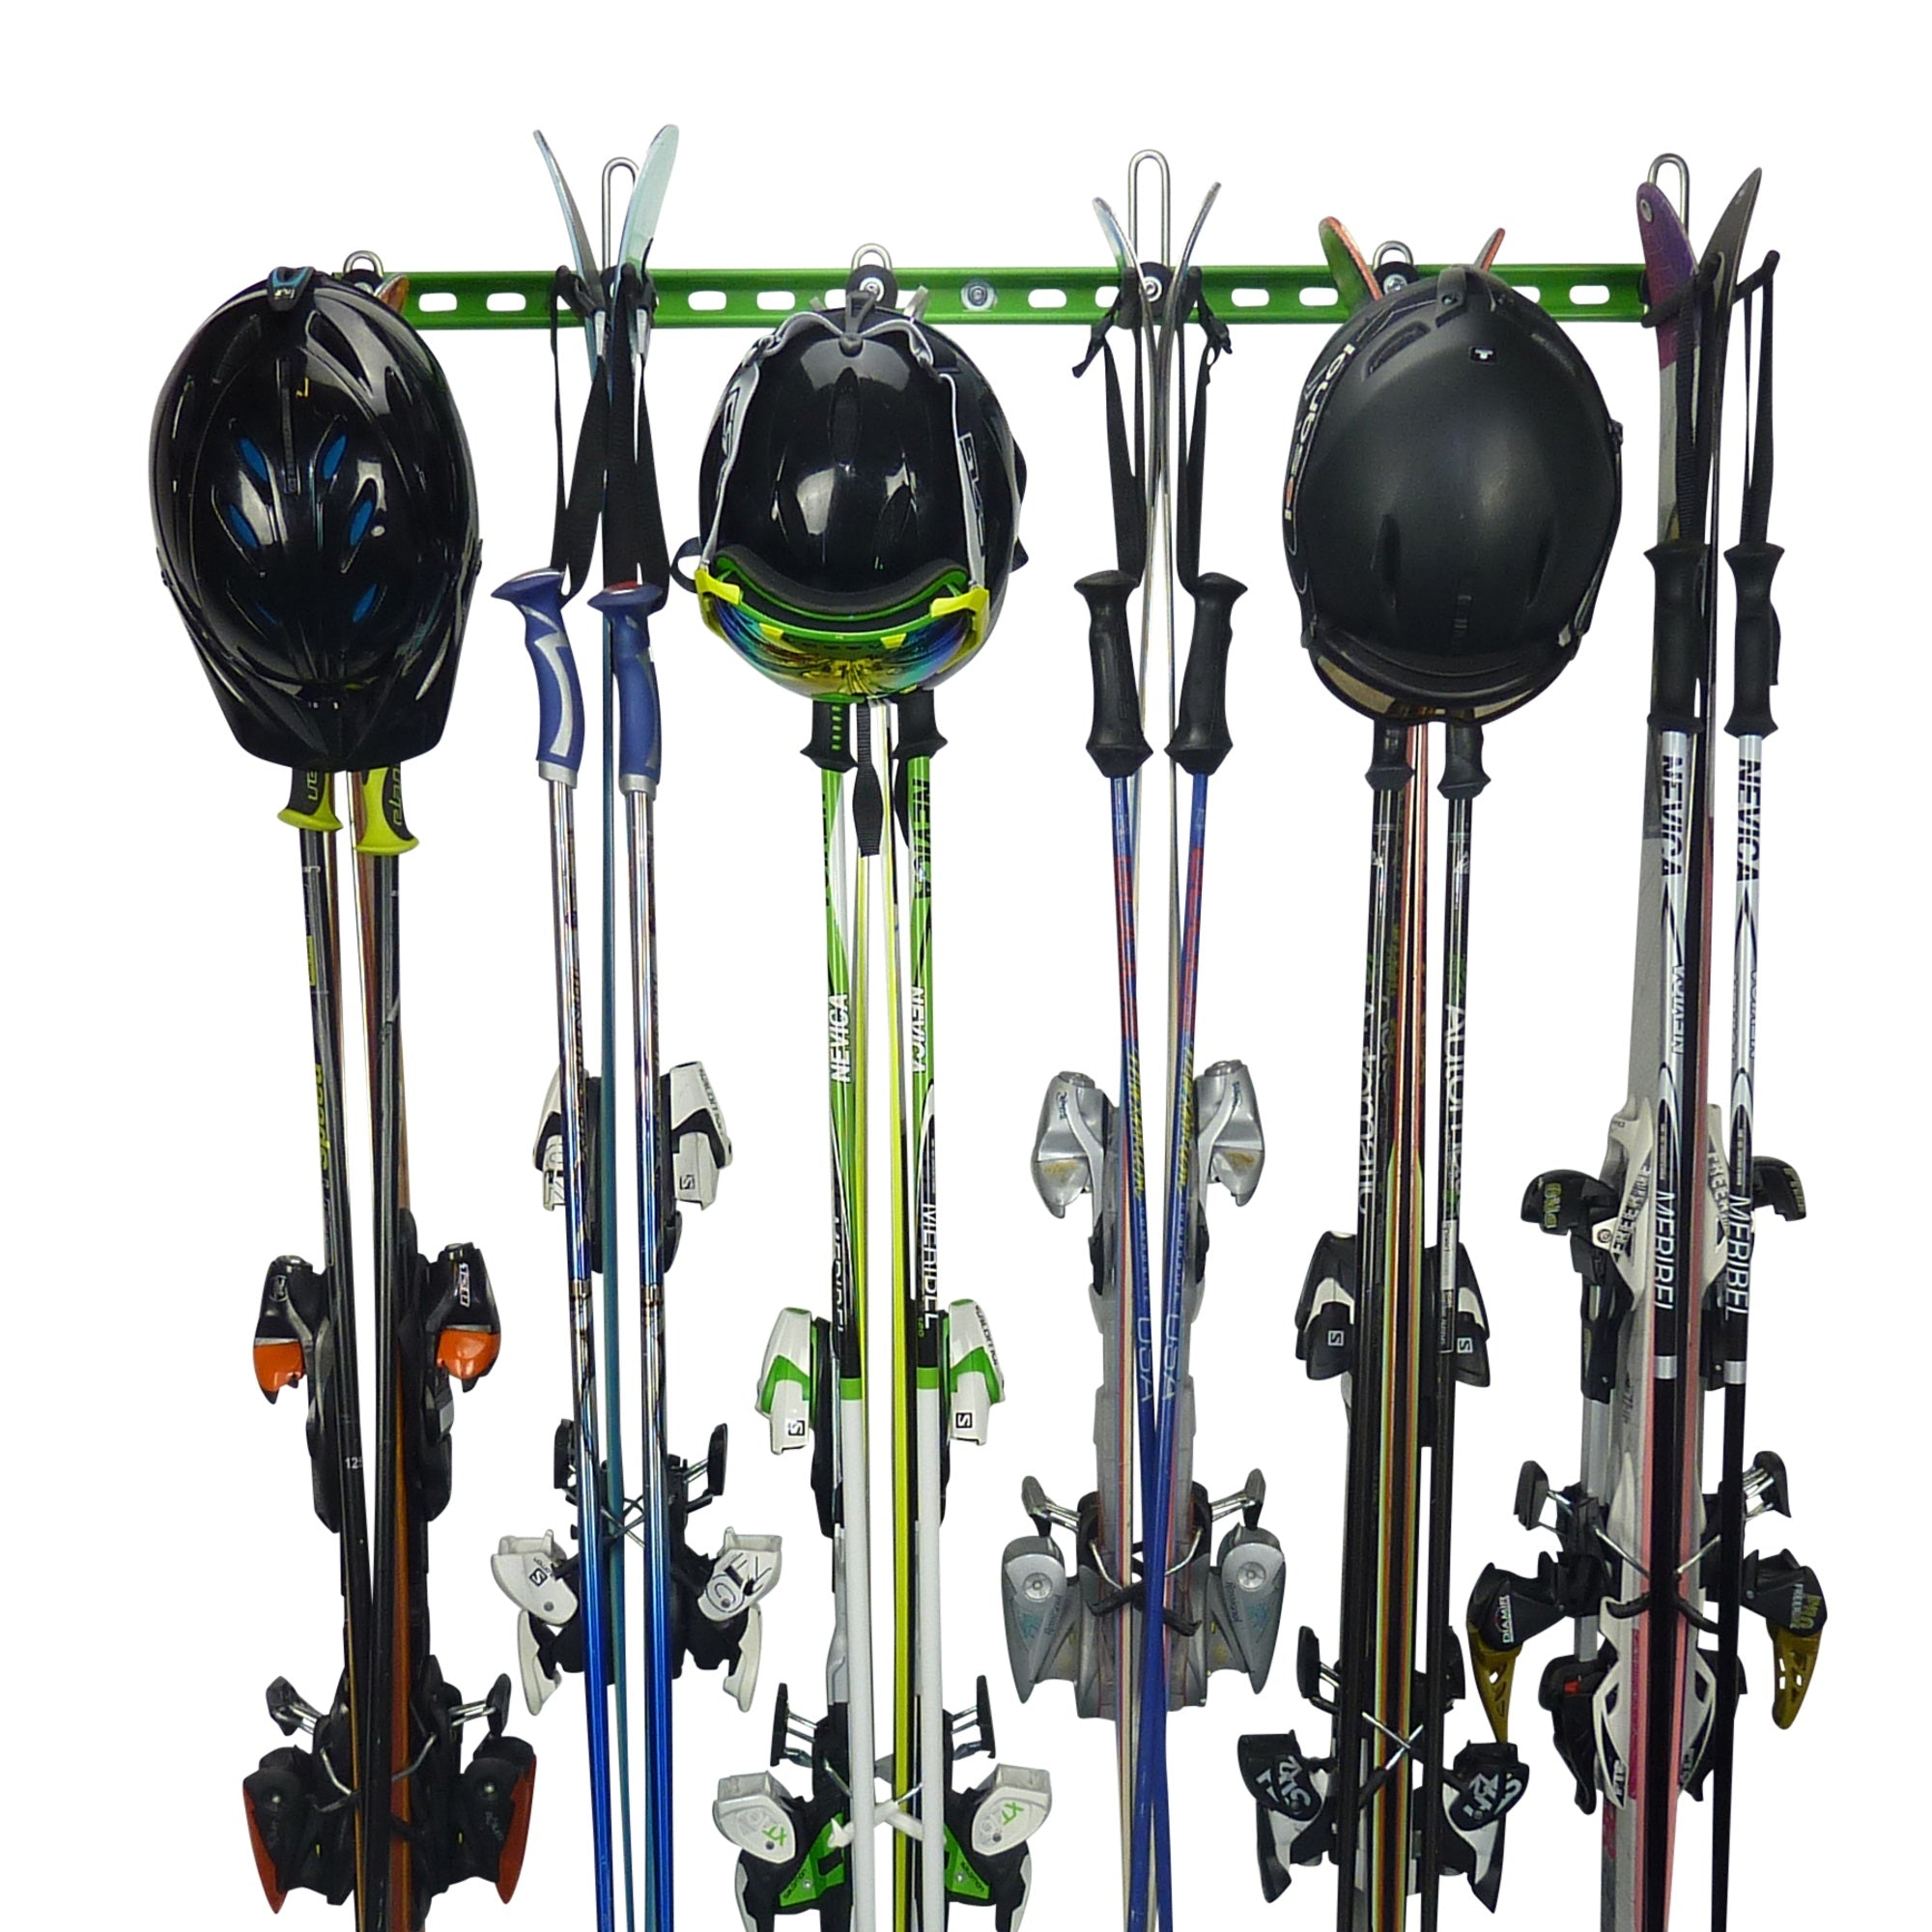 Wall mounting Ski Hanger and Ski Rack for up to 6 pairs of skis PLUS poles and helmets. GearHooks® SR2/4/6